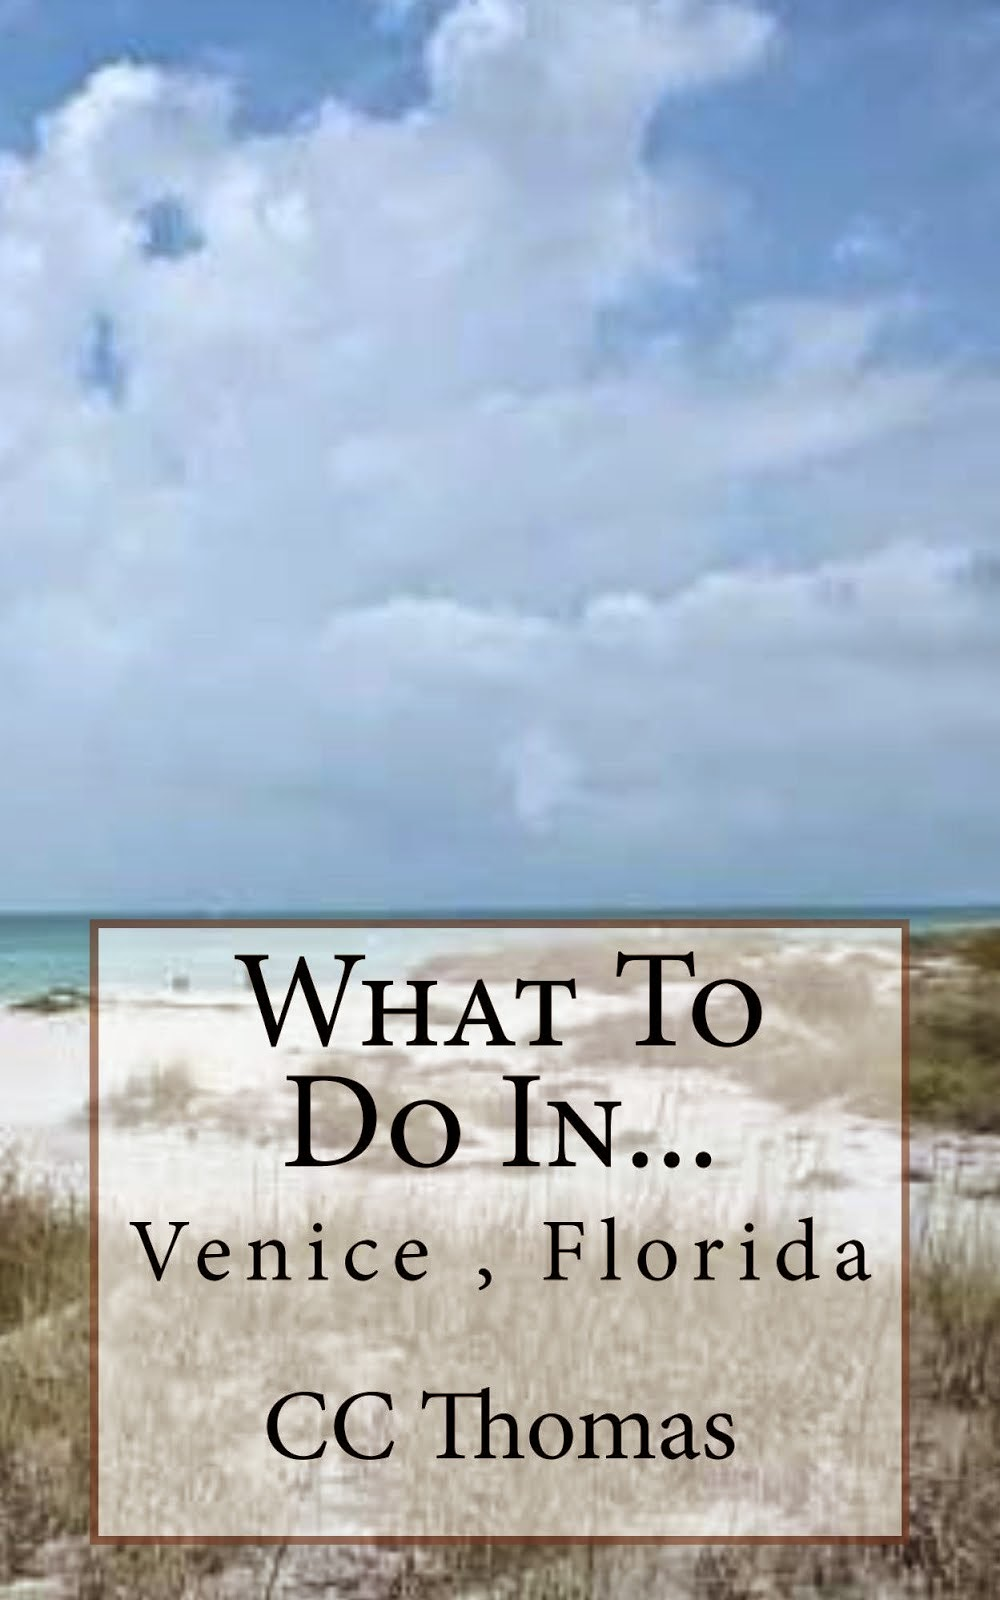 What To Do In...Venice, Florida